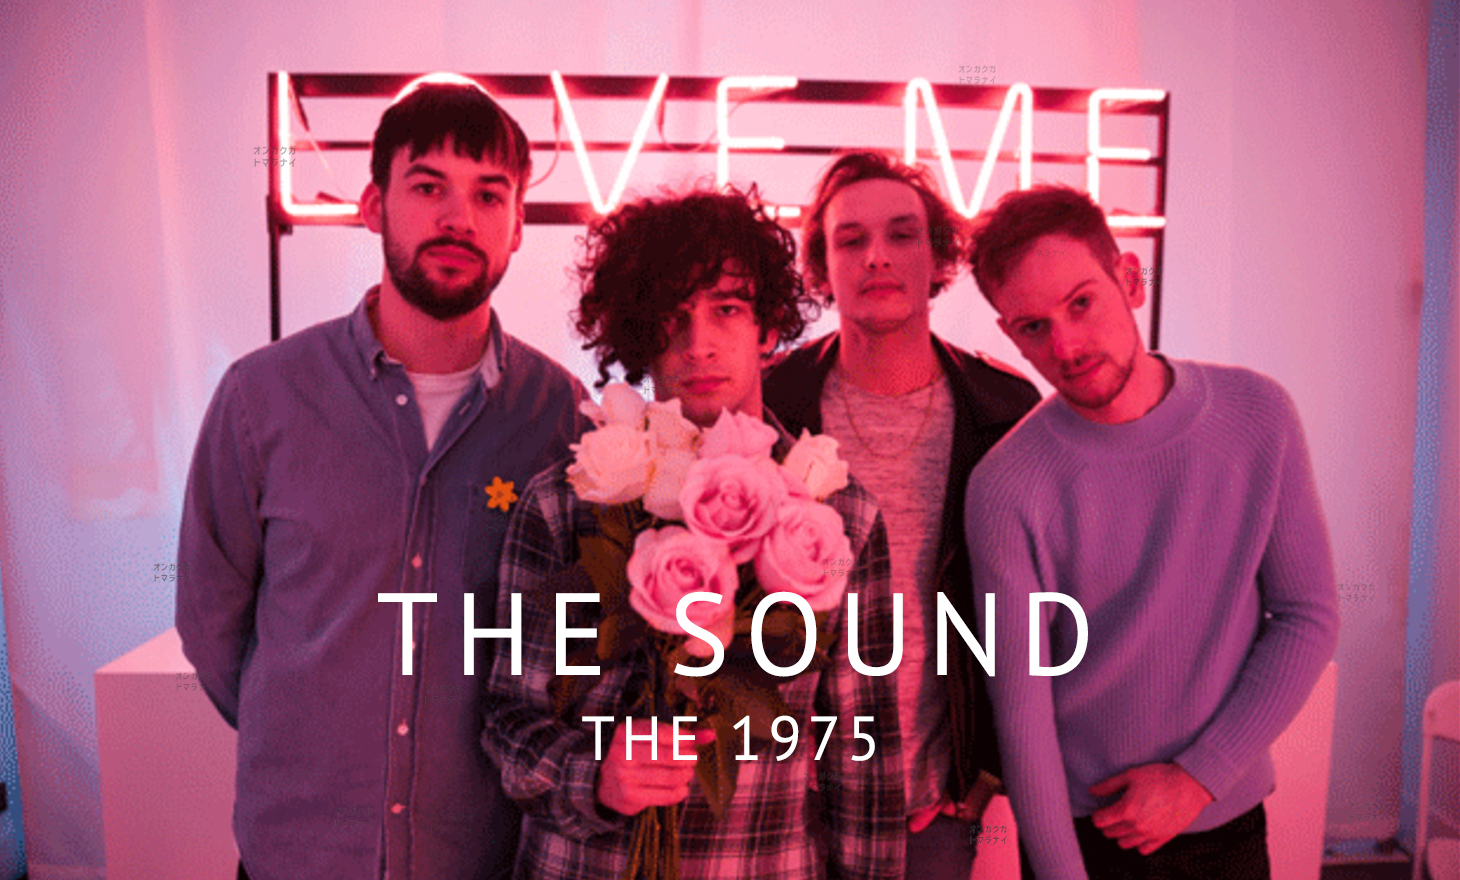 The the sound 1975